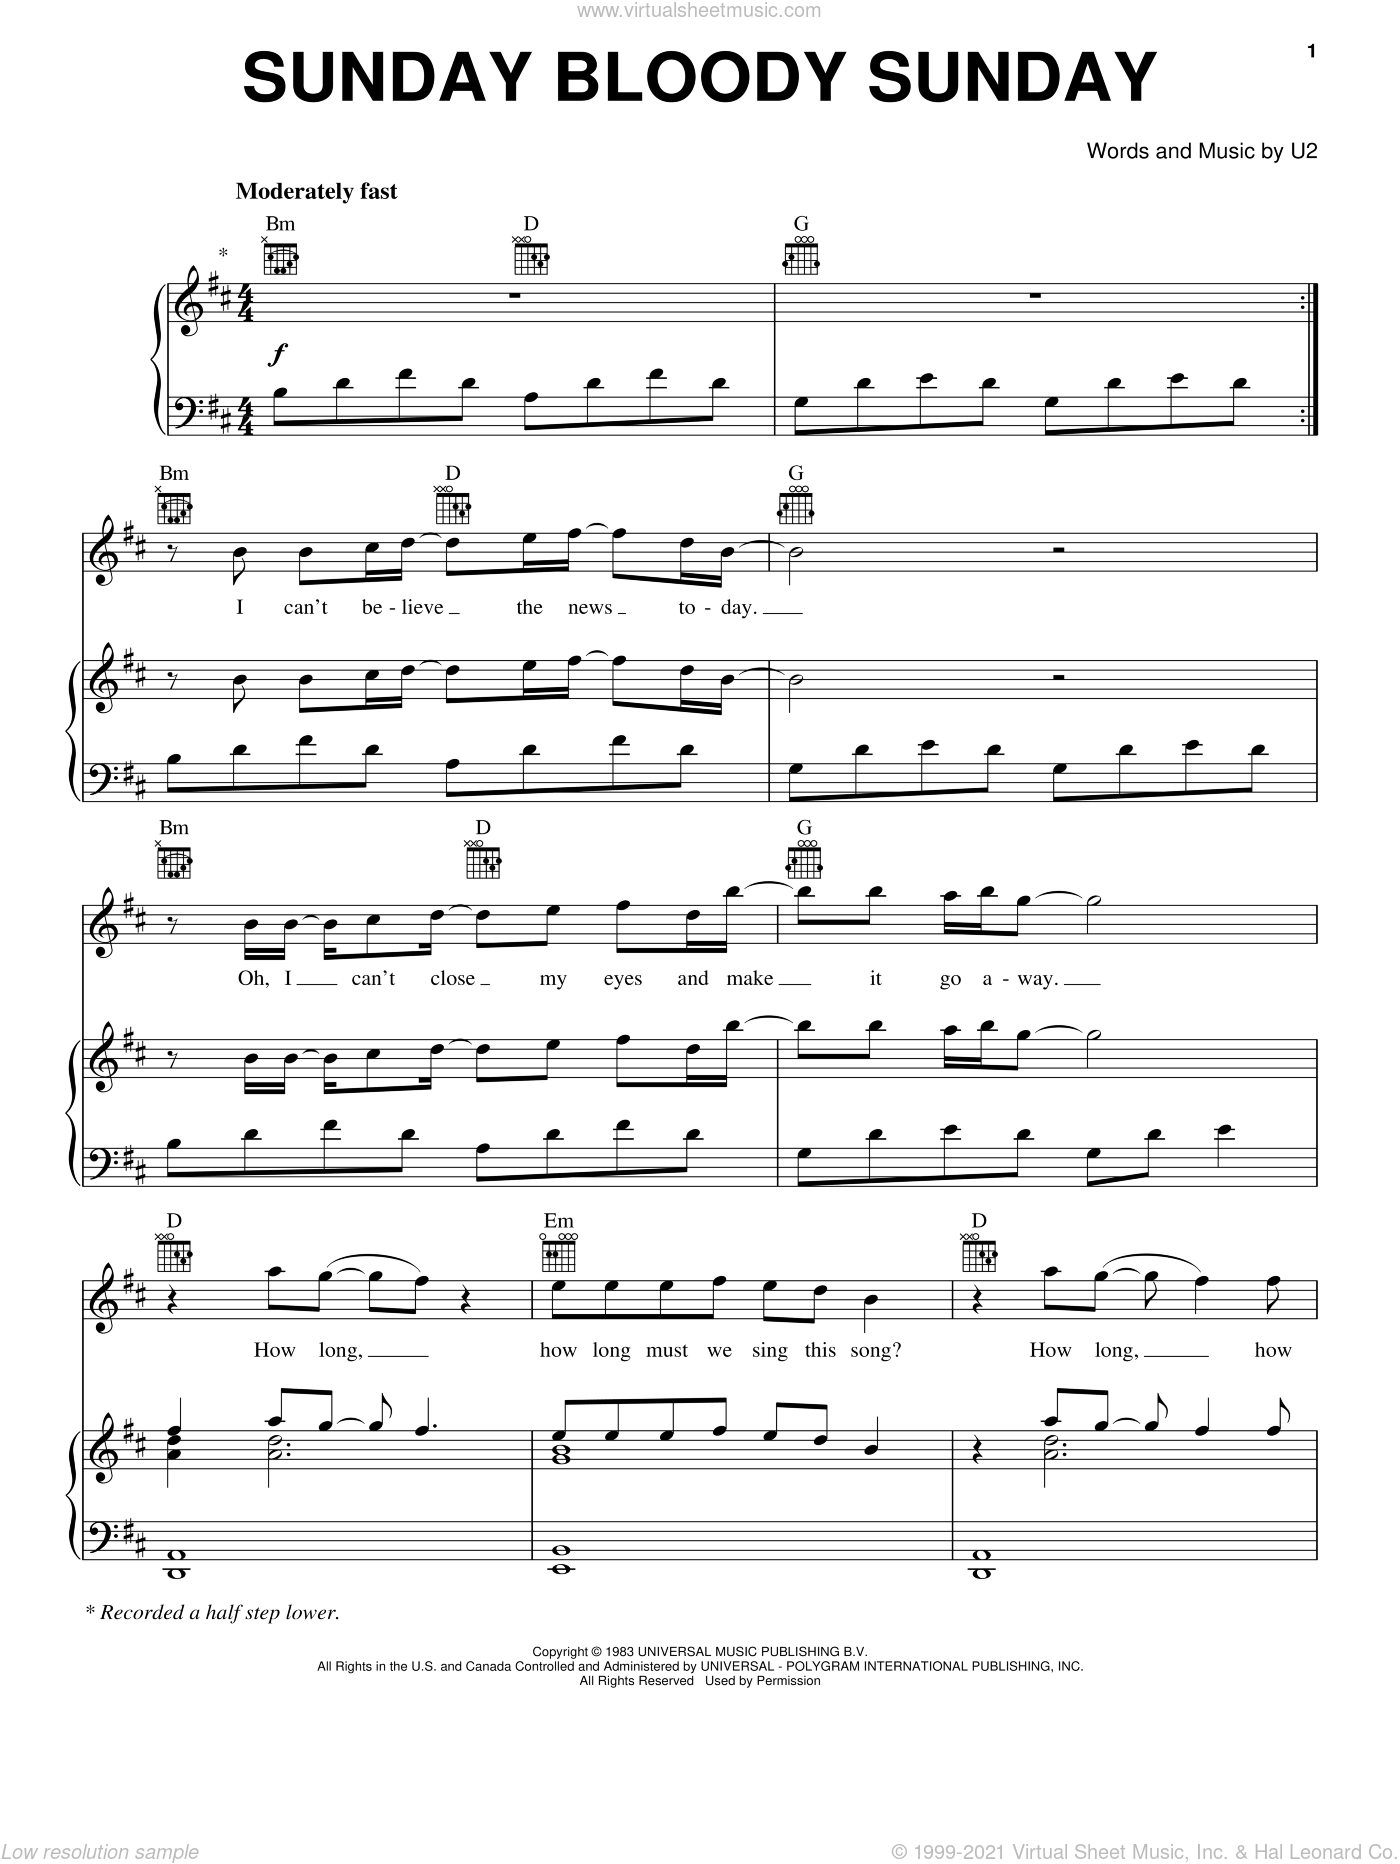 Sunday Bloody Sunday sheet music for voice, piano or guitar by U2, Bono and The Edge, intermediate skill level